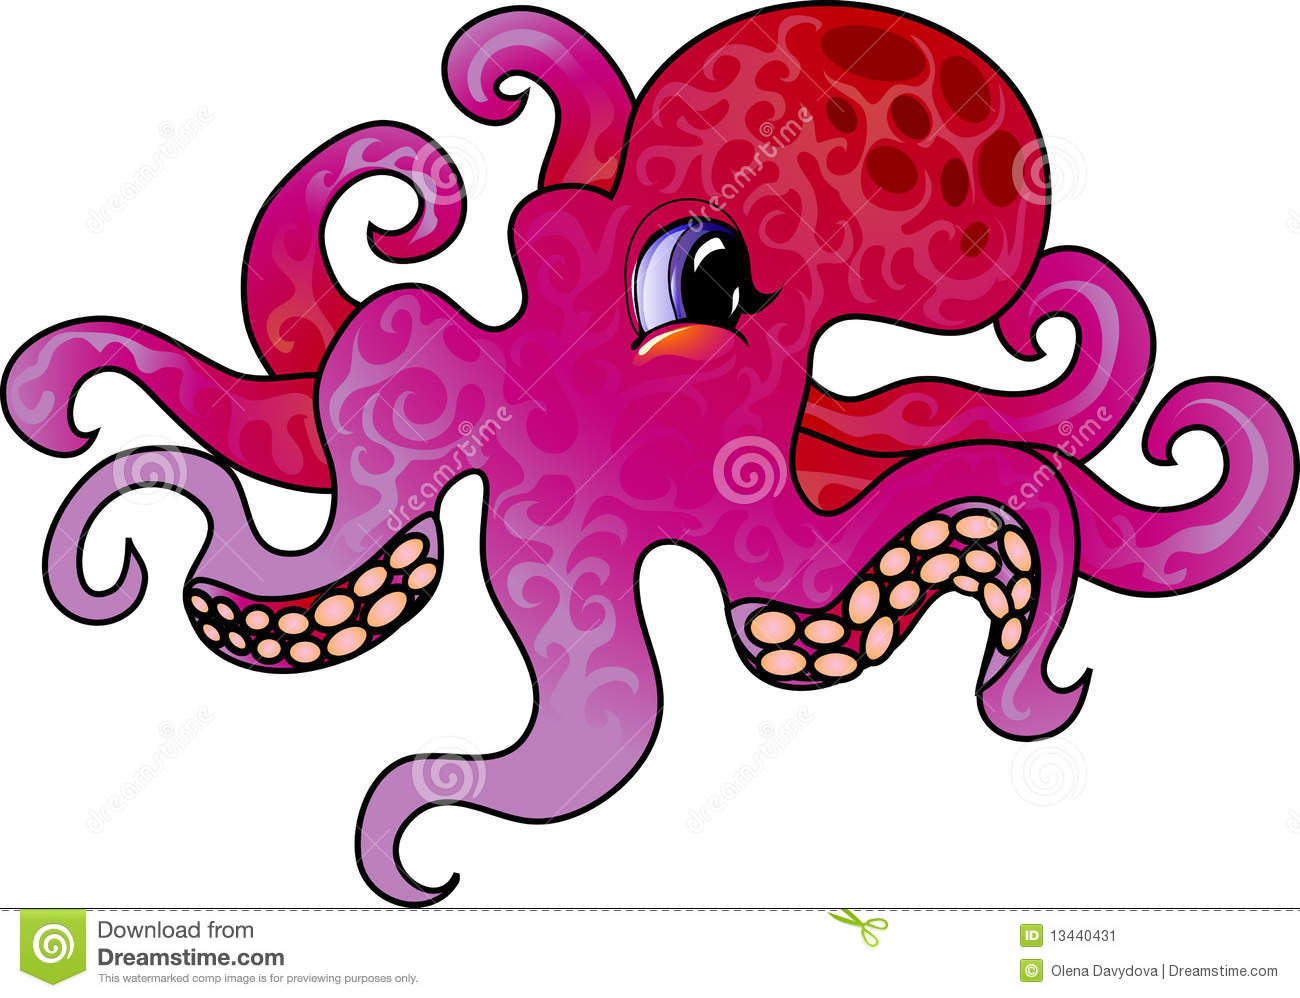 Evil octopus cartoon - photo#15